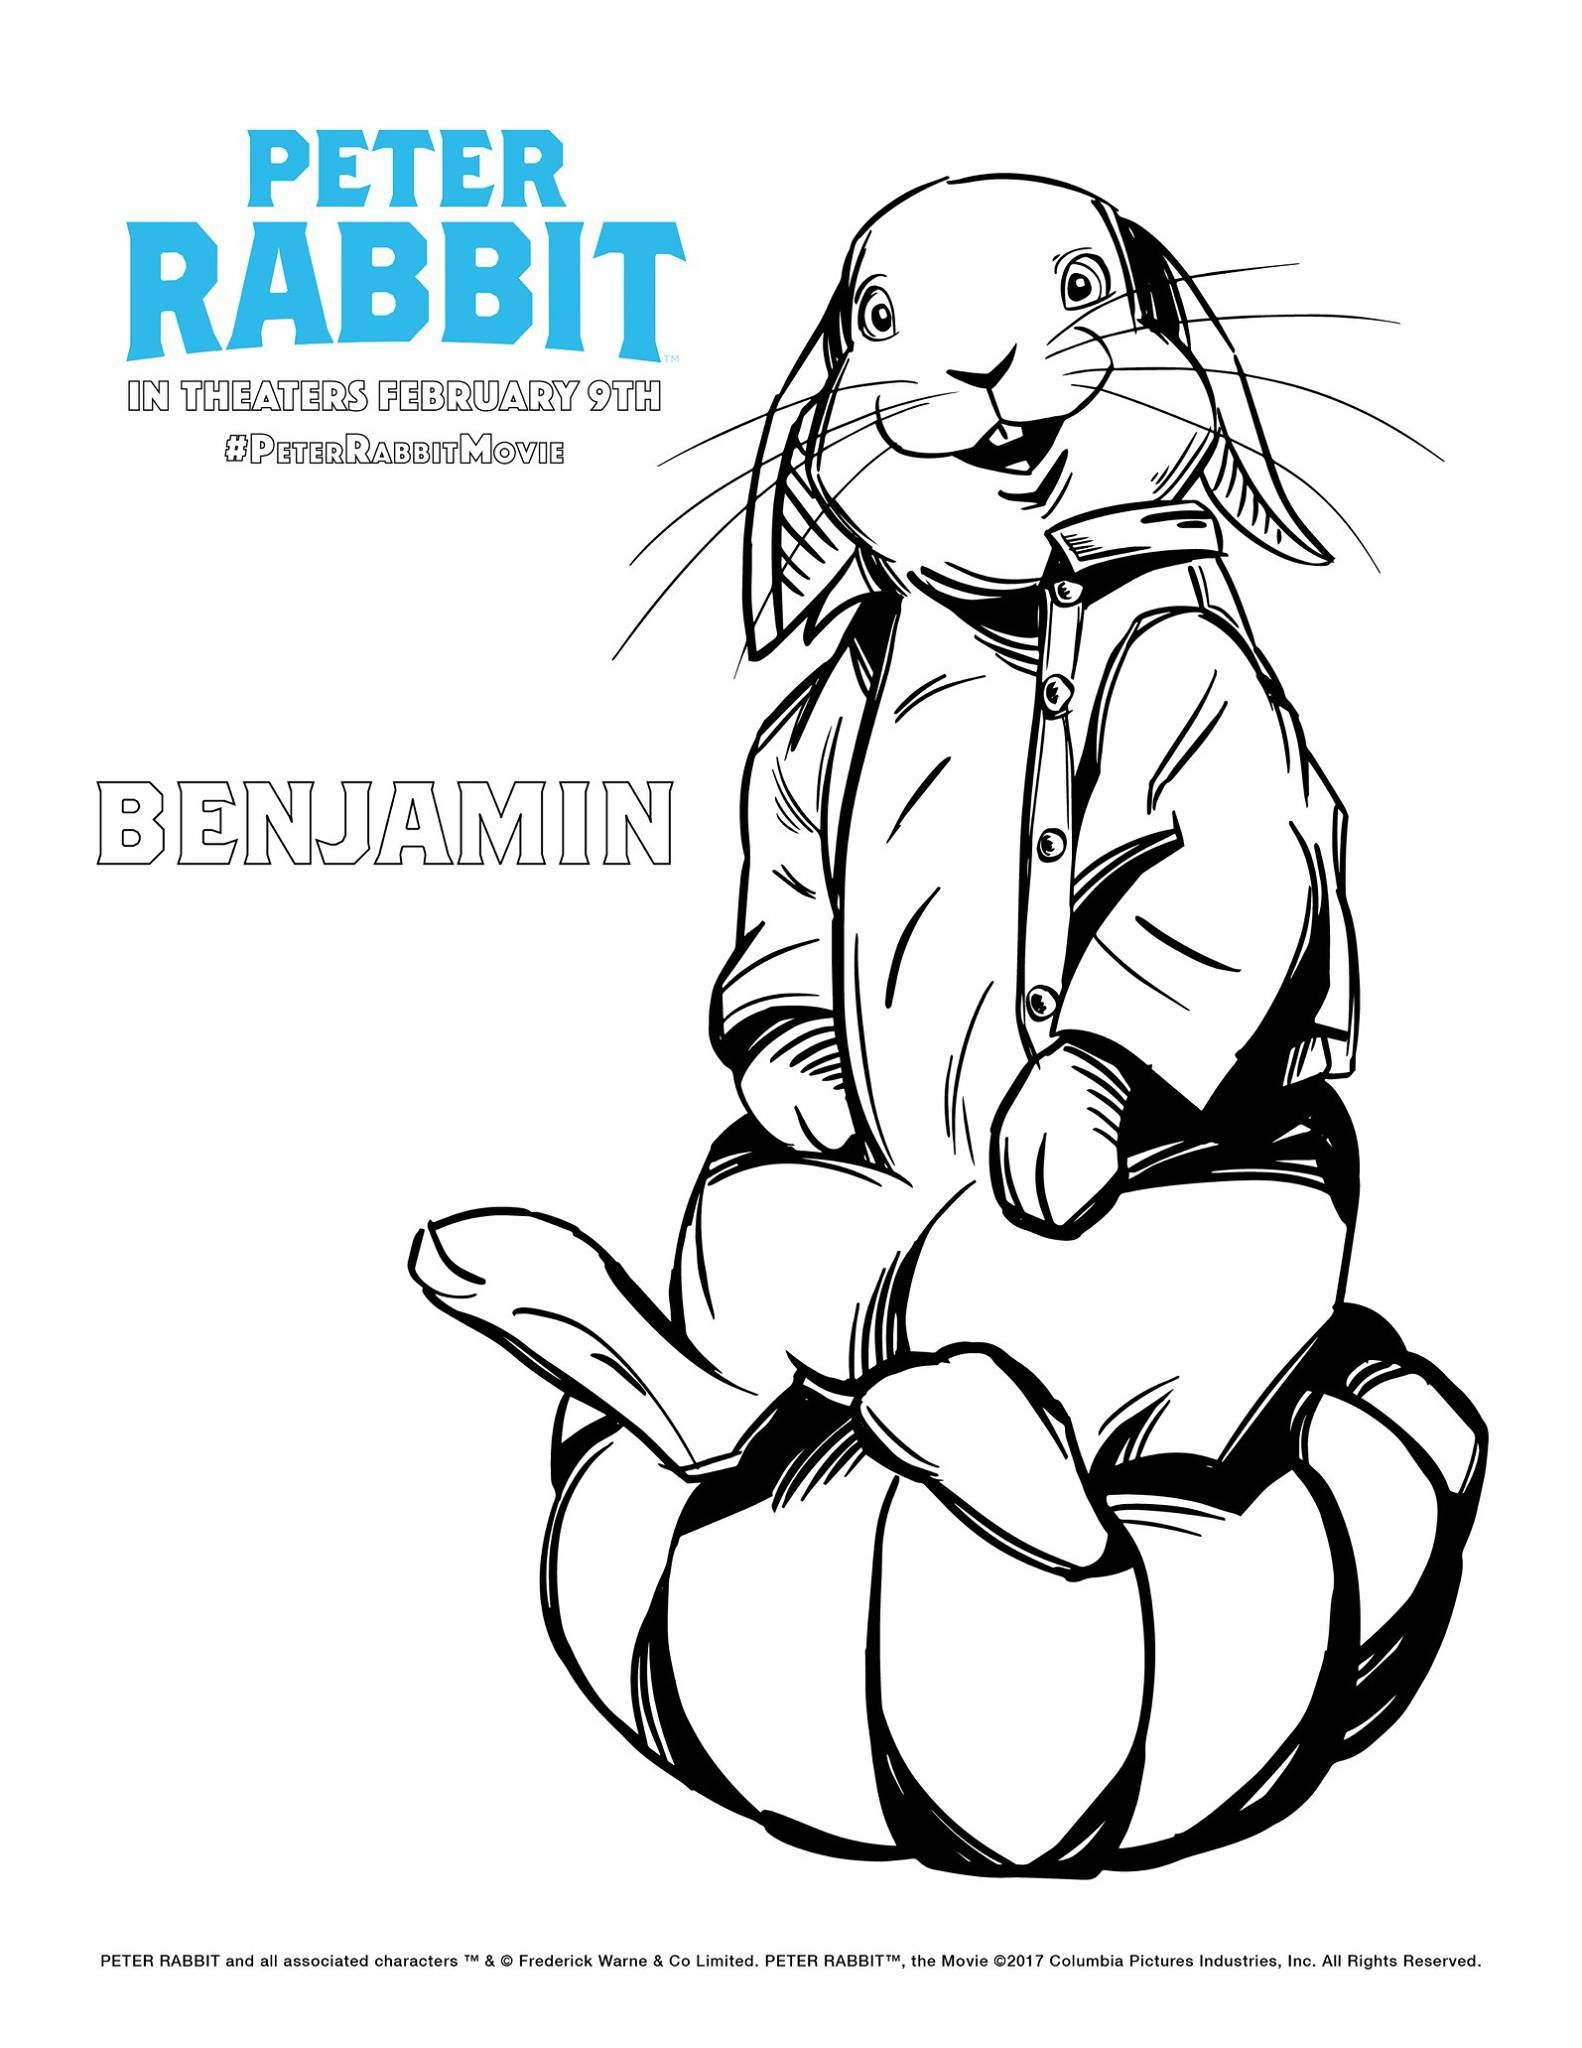 Benjamin Bunny Colouring Peter Rabbit Movie Peter Rabbit